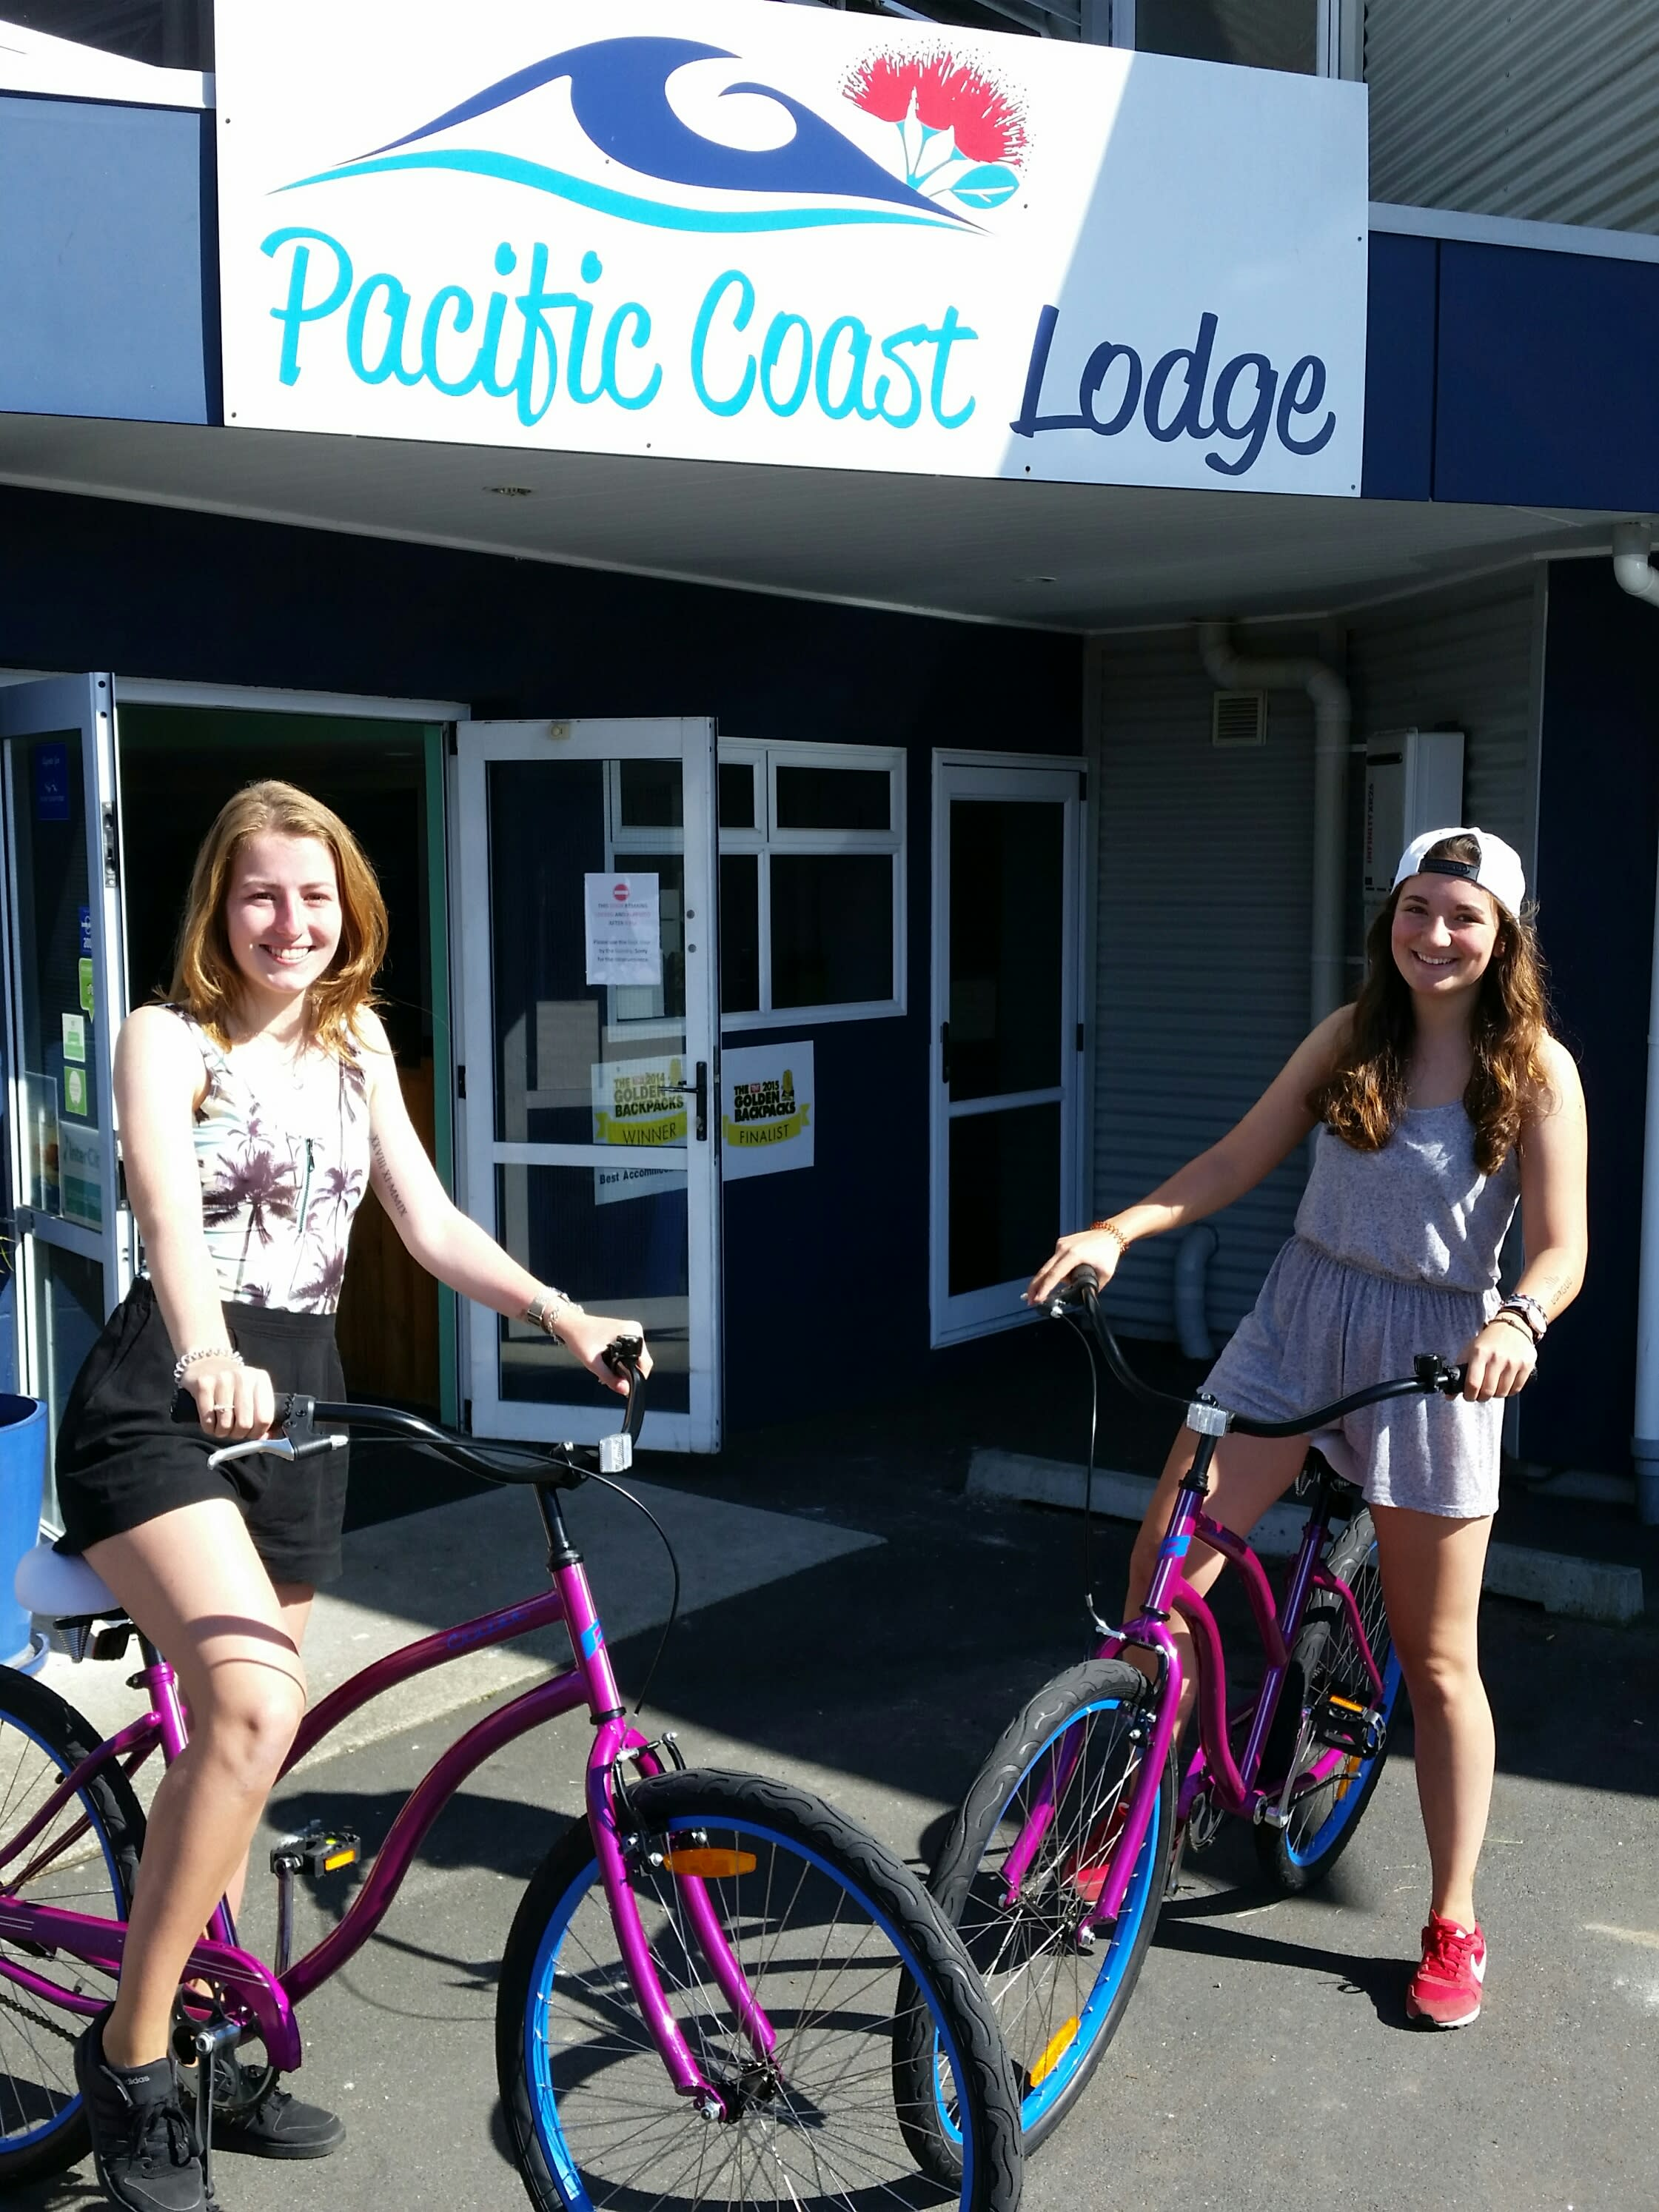 Pacific Coast Backpackers Lodge